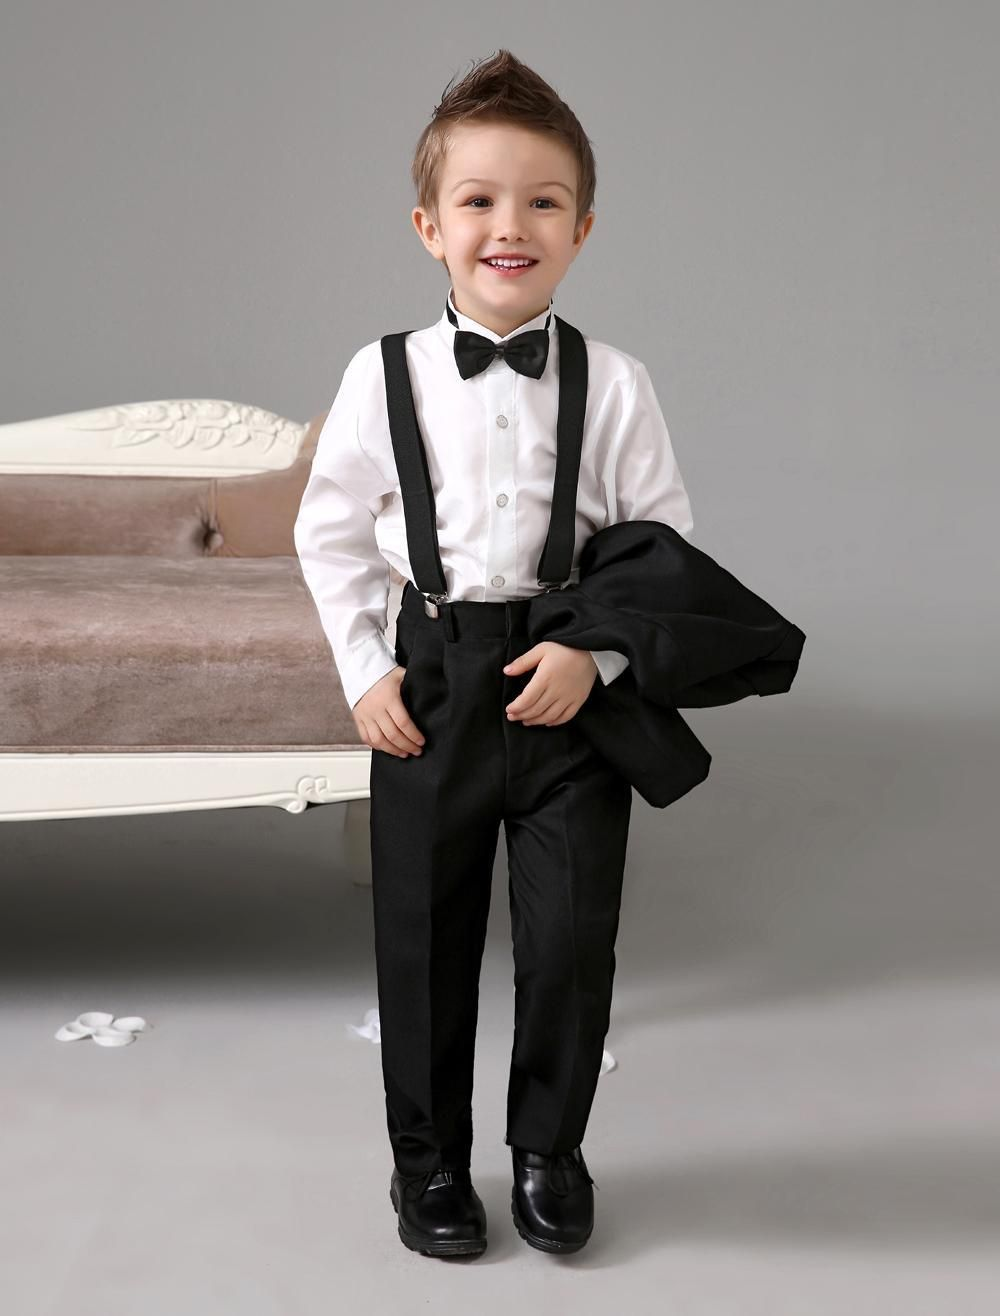 634e18b05ec6 Four Pieces Luxurious Black Ring Bearer Suits Cool Boys Tuxedo With Black  Bow Tie Kids Formal Dress Boys Suits Fashion Kids Suits Best Formal Dress  For Man ...